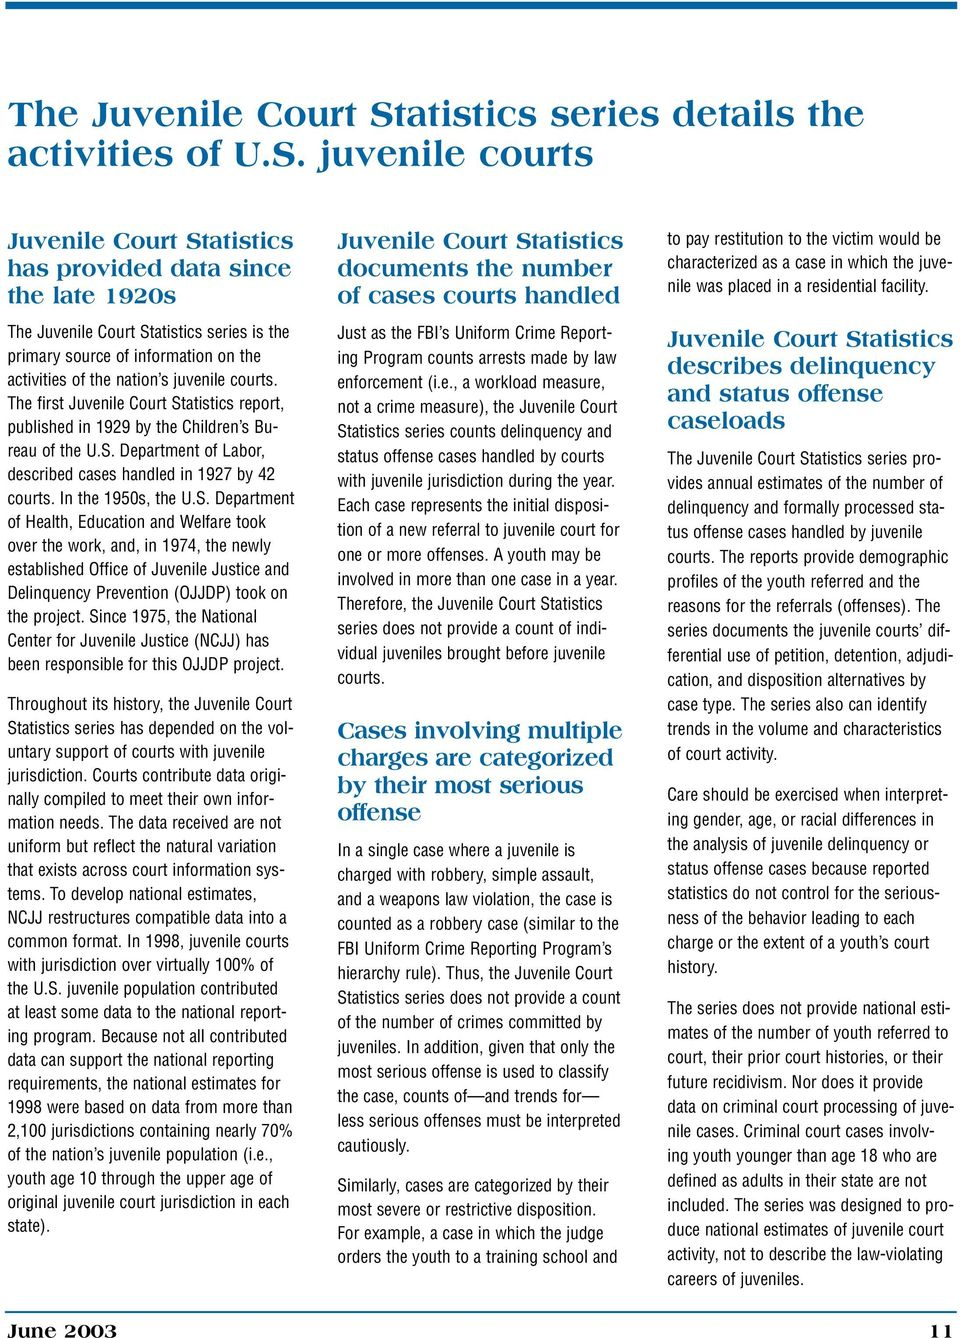 juvenile courts Juvenile Court Statistics has provided data since the late 192s atistics series is the primary source of information on the activities of the nation s juvenile courts.